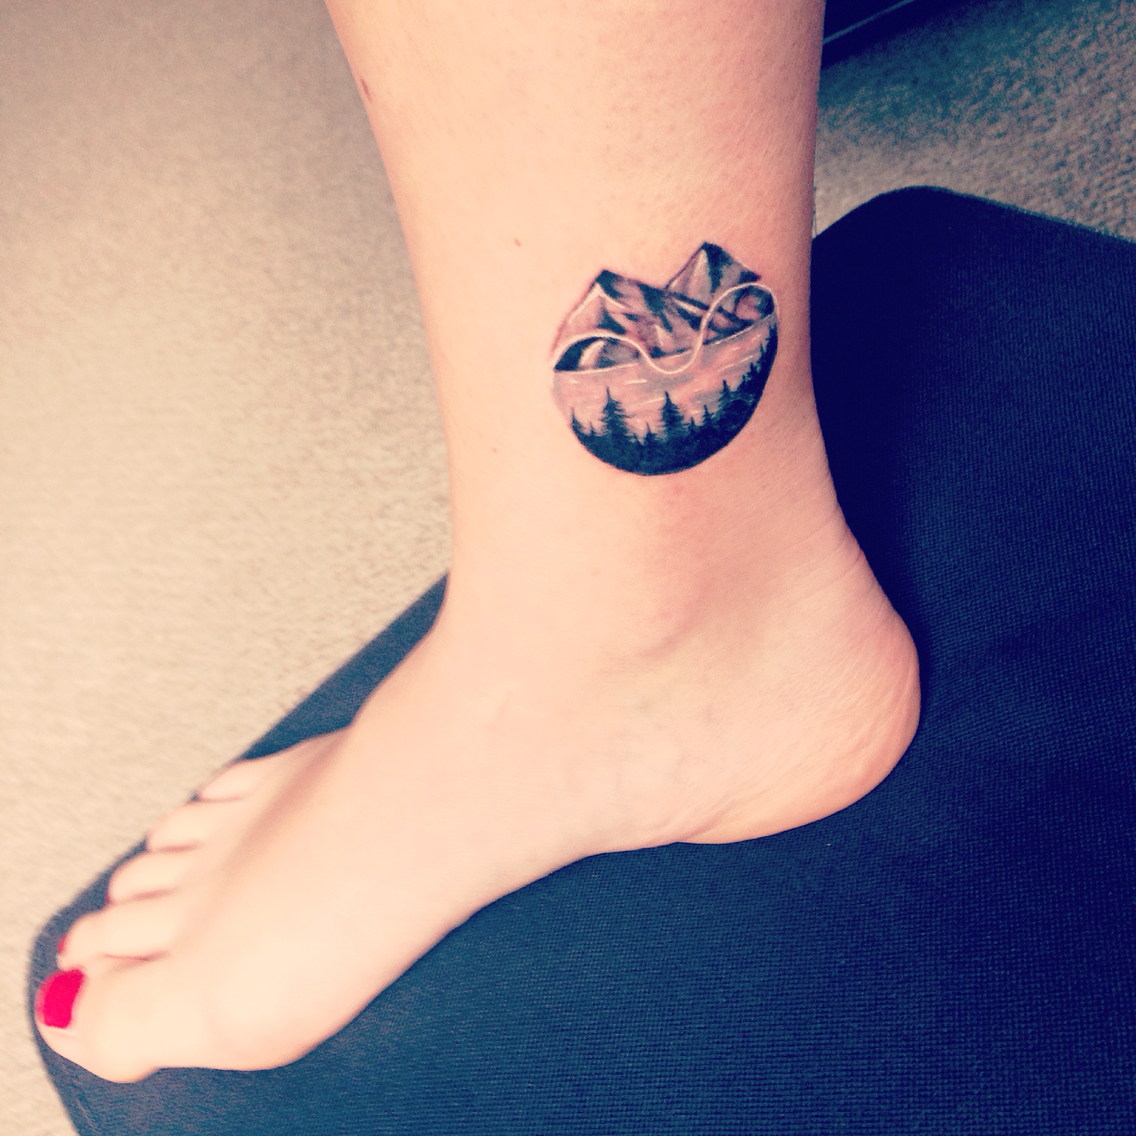 Ankle Tattoo Ideas for Women